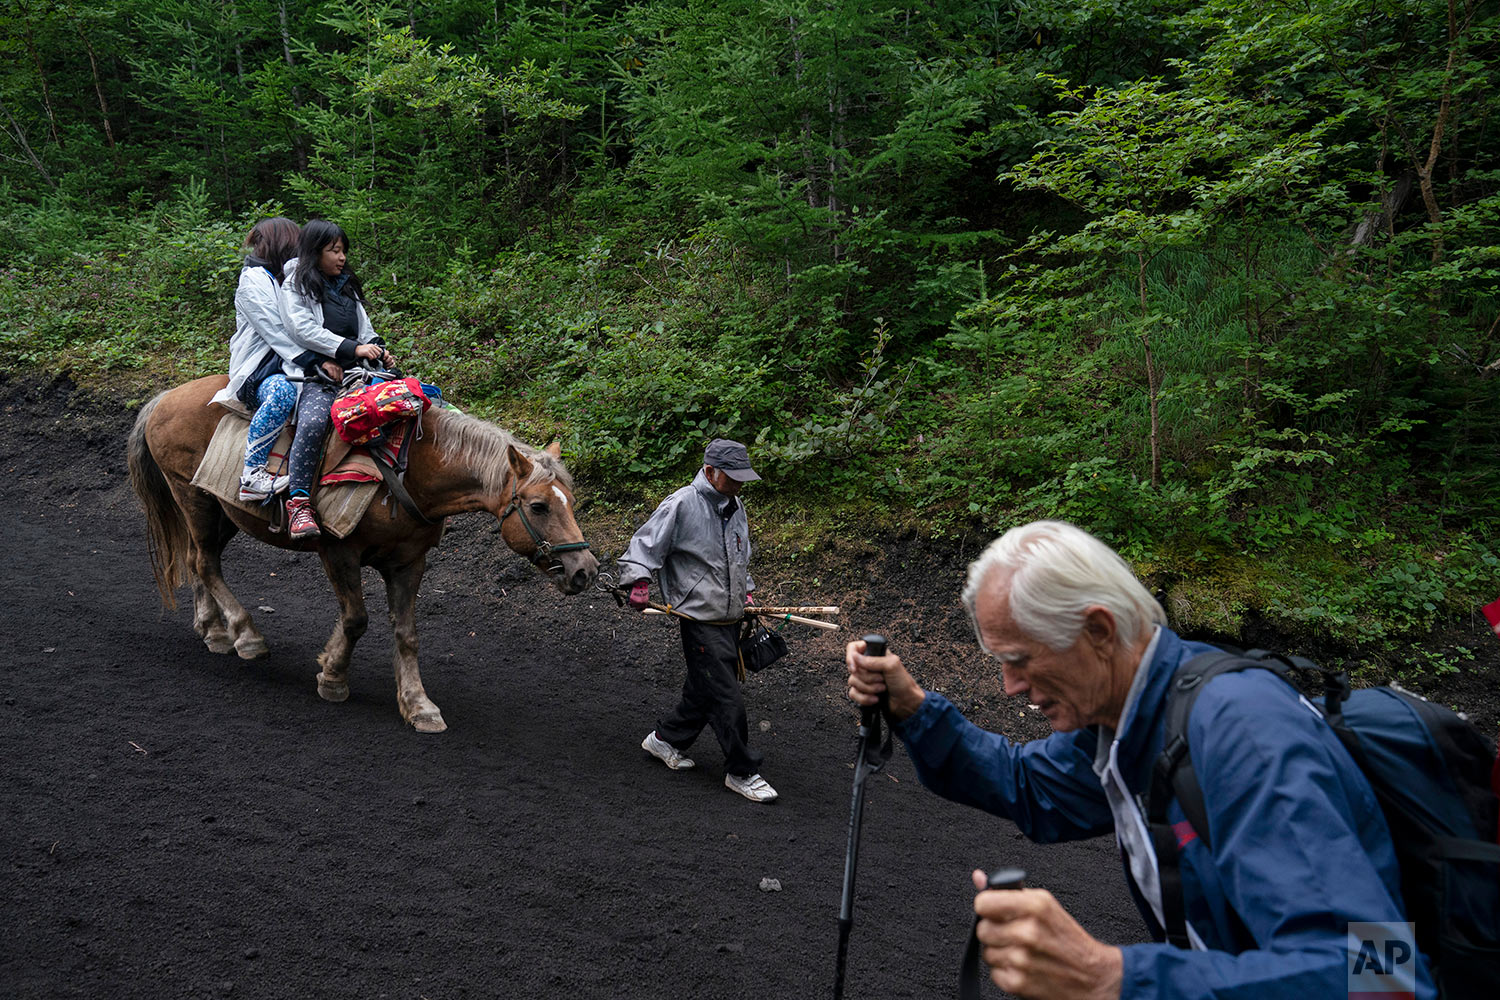 Two climbers on a horse descend the Yoshida trail of Mount Fuji, Aug. 26, 2019, in Japan. (AP Photo/Jae C. Hong)